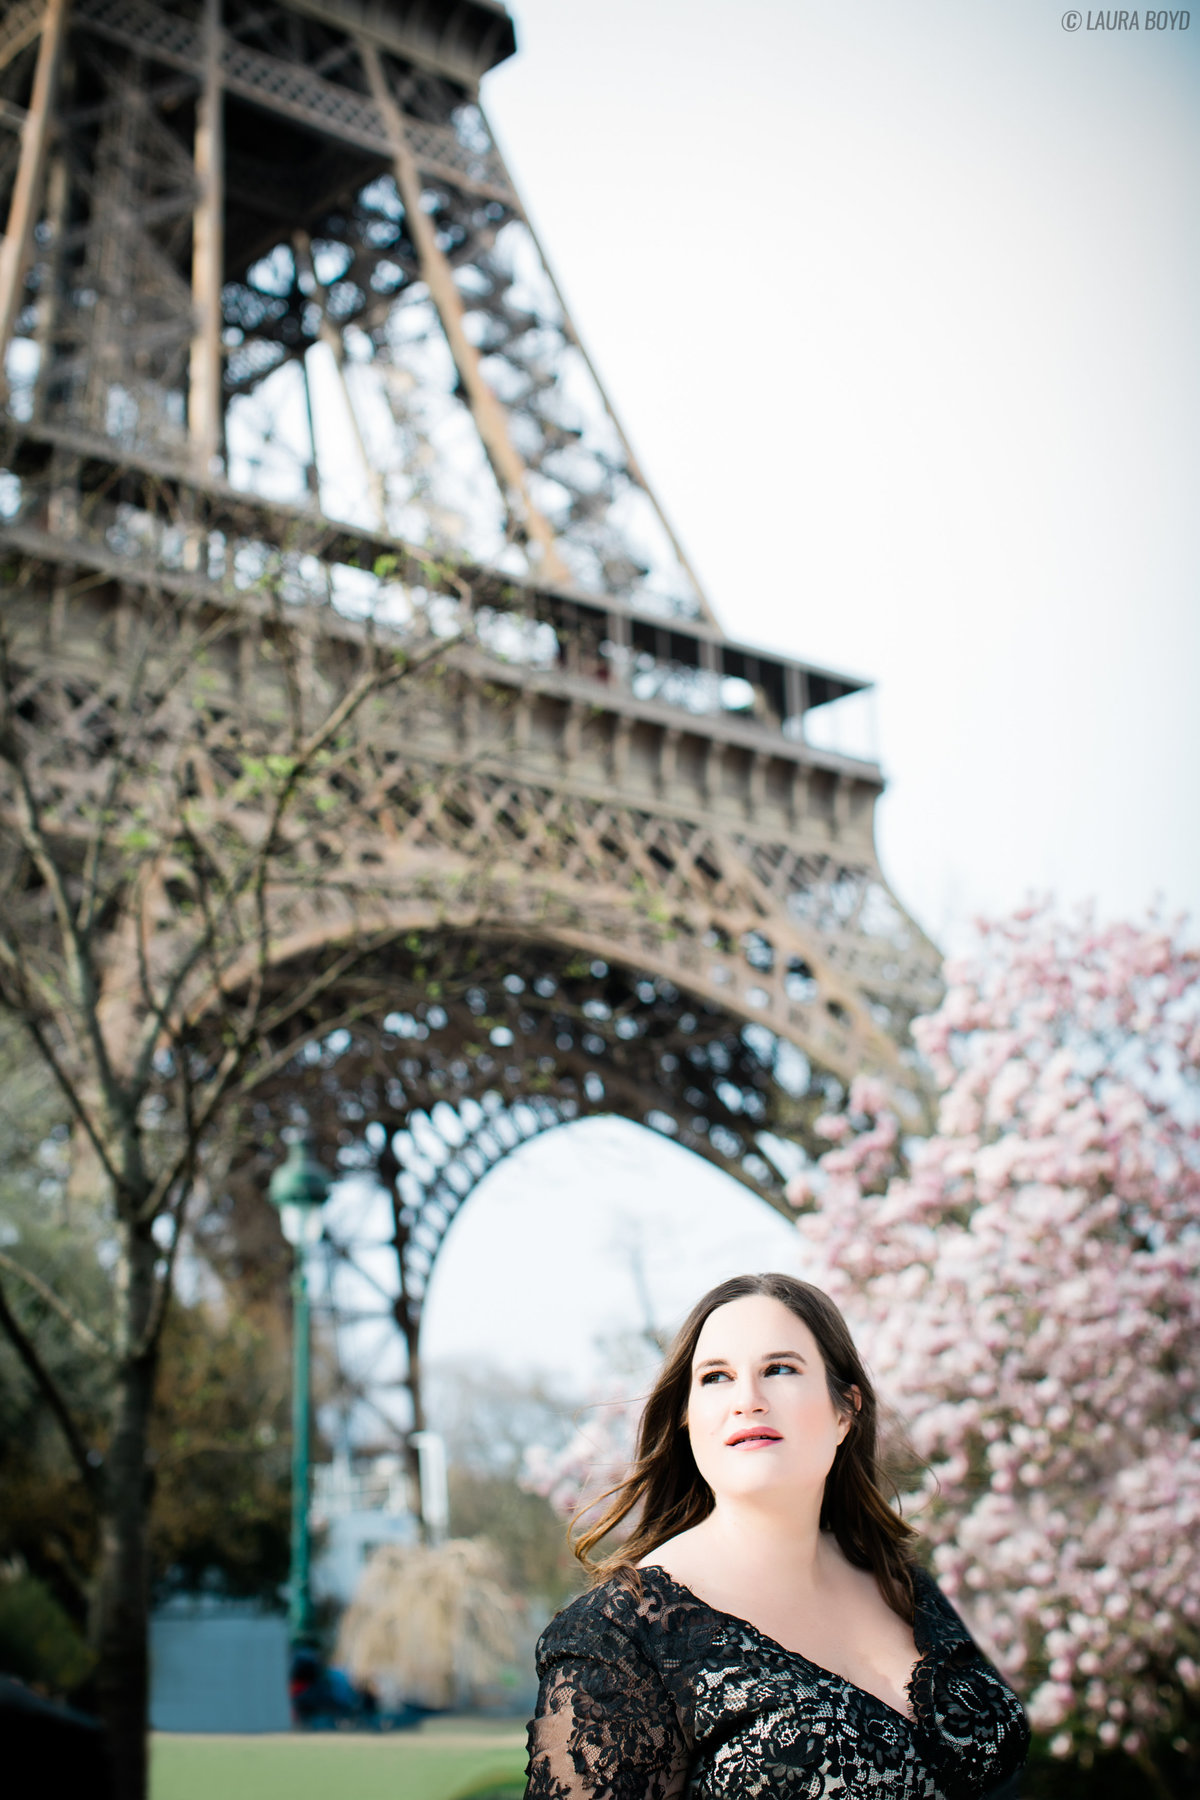 showit.laura.boyd.portraits.paris.14